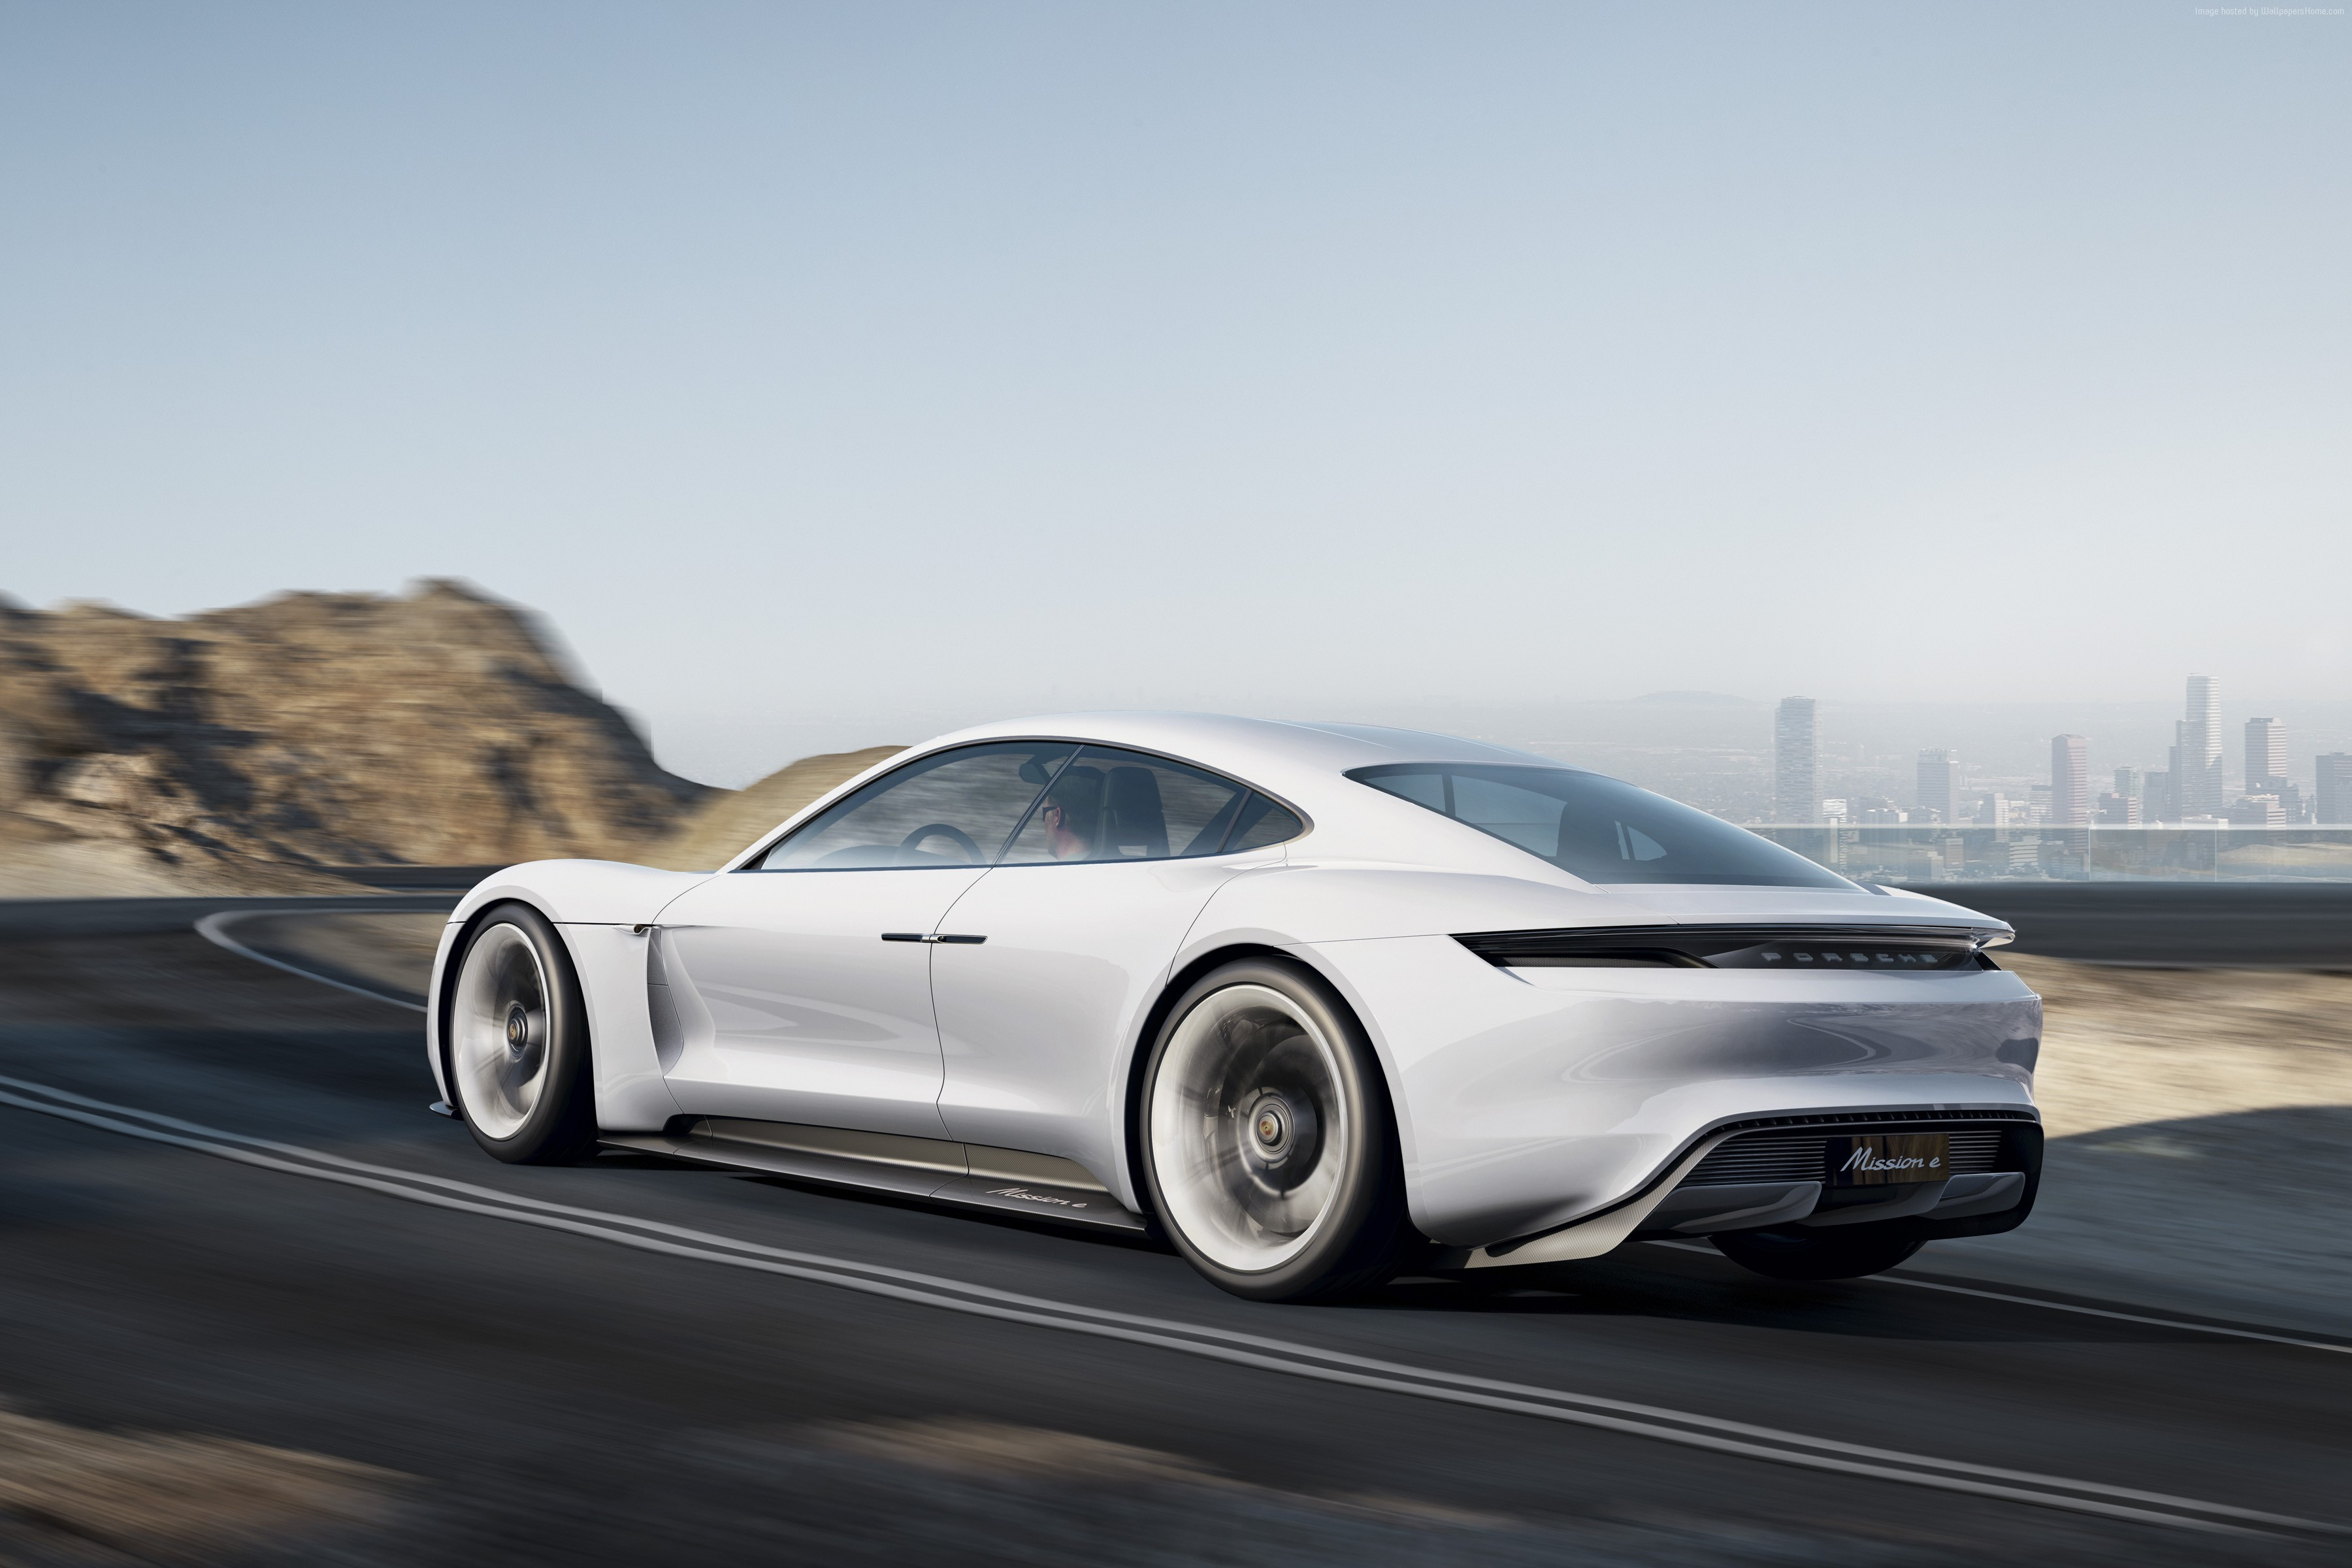 100901 800v white Porsche Taycan supercar Electric Cars 3600x2400